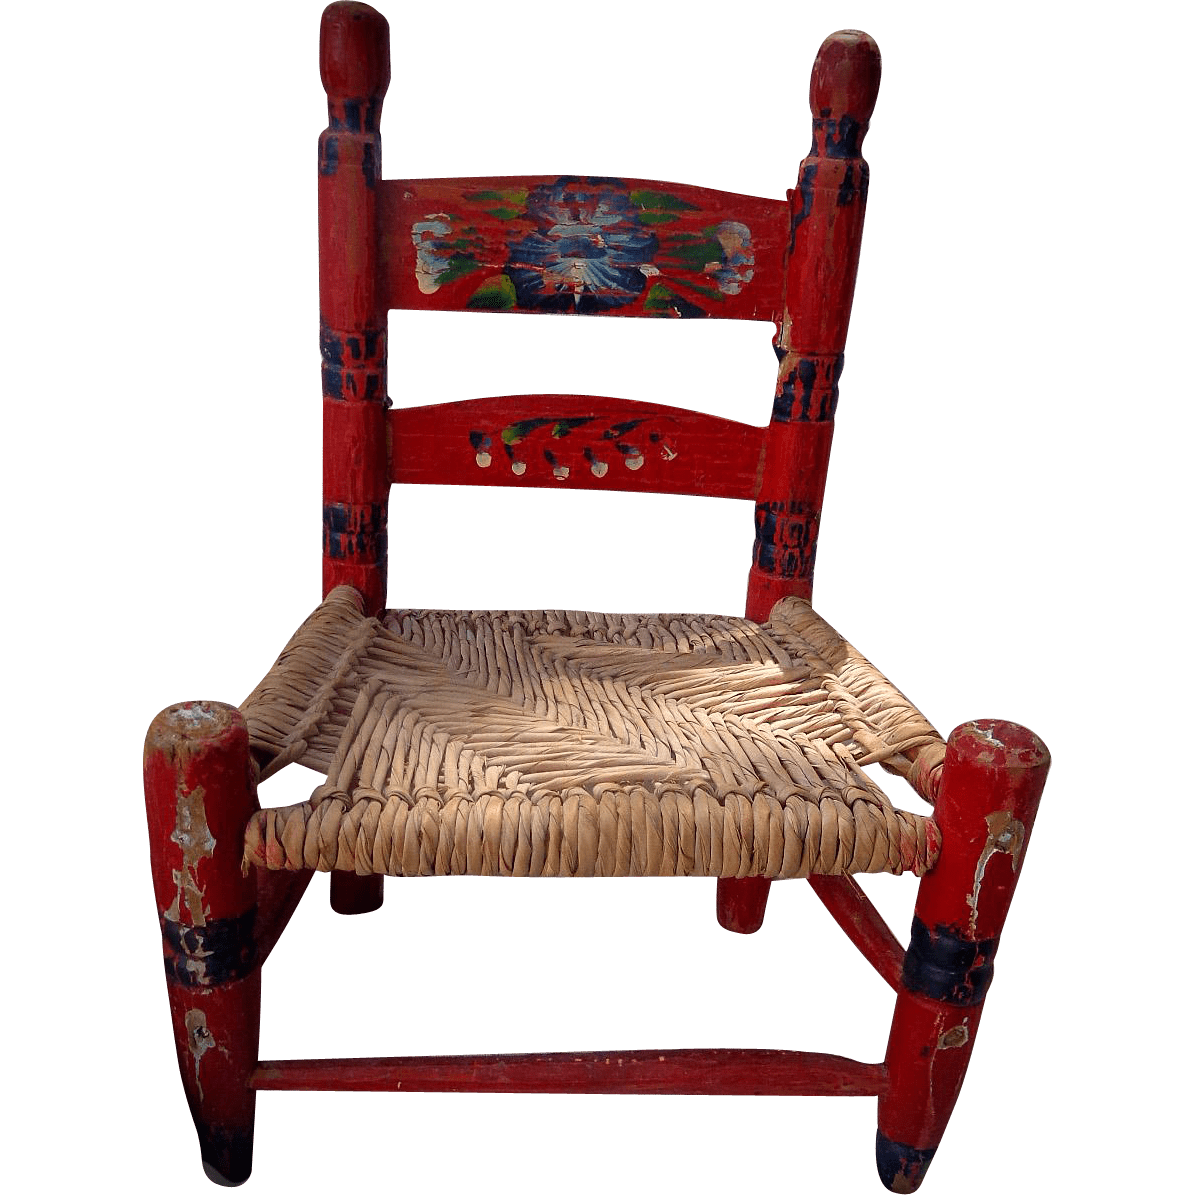 fancy accent chairs perfect posture in chair beautiful old decorative hand painted child 39s with